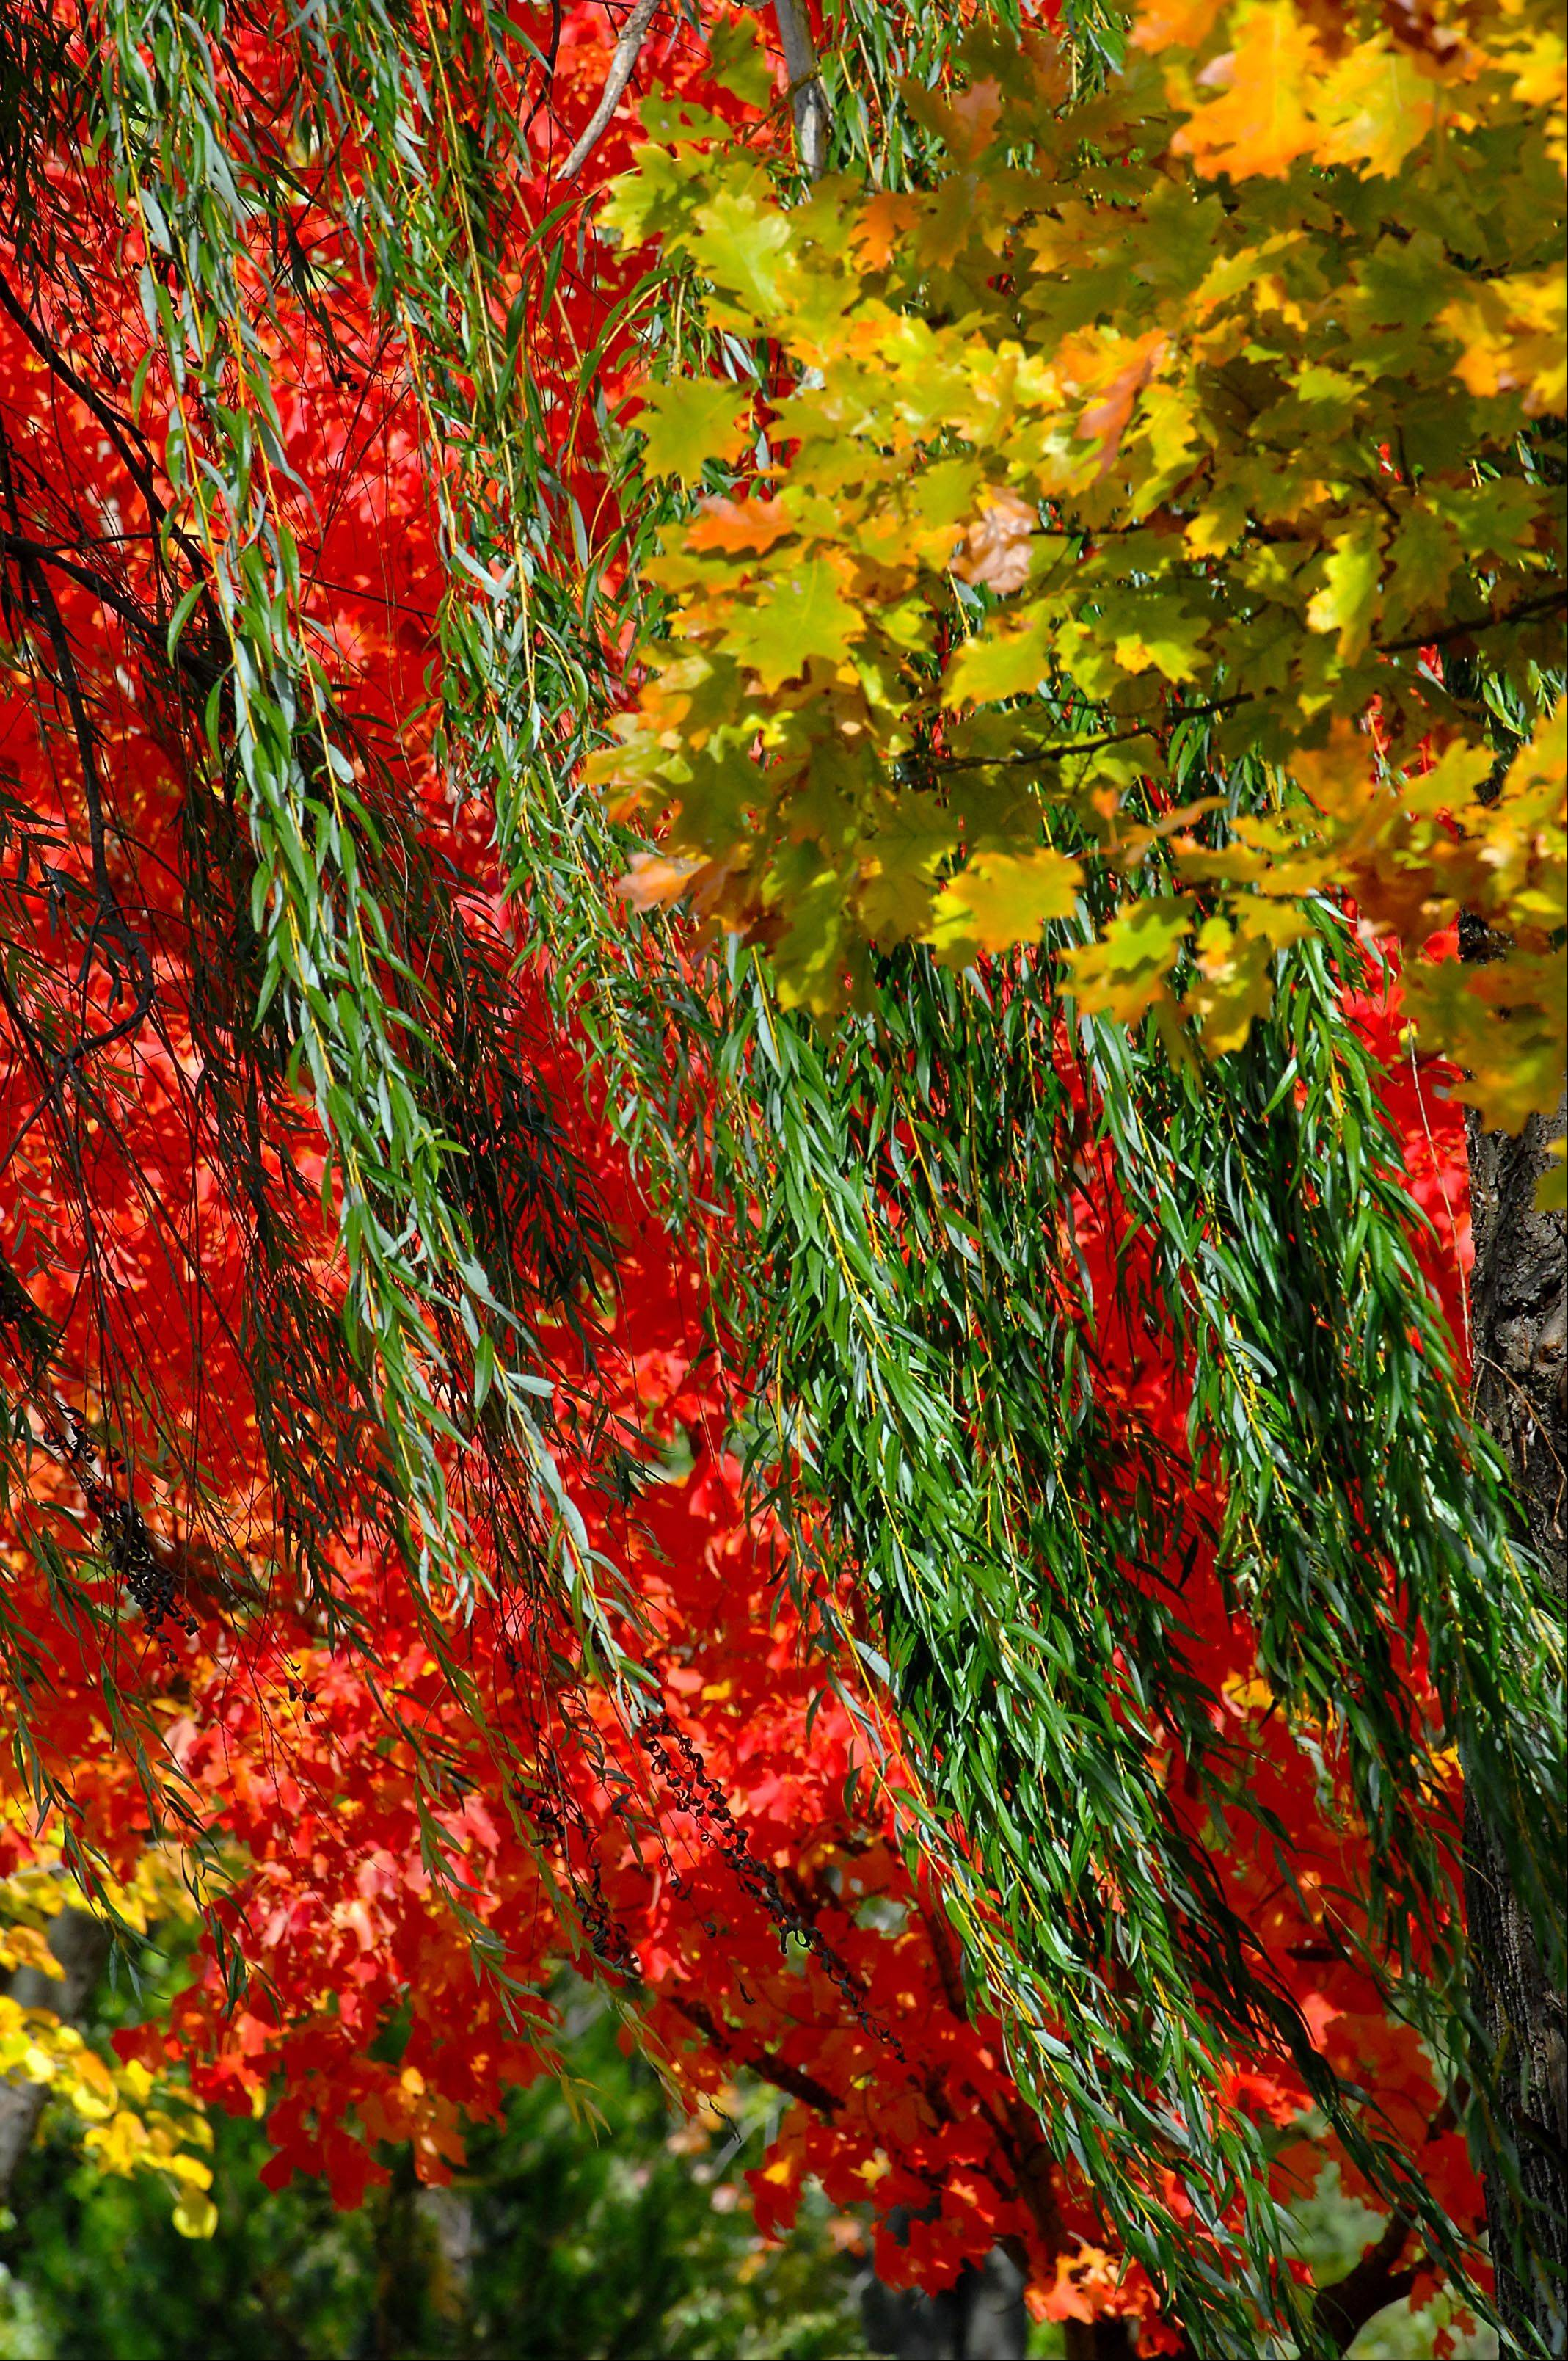 A red maple, a green willow and an orange oak are layered near the Fox River in Algonquin Wednesday.